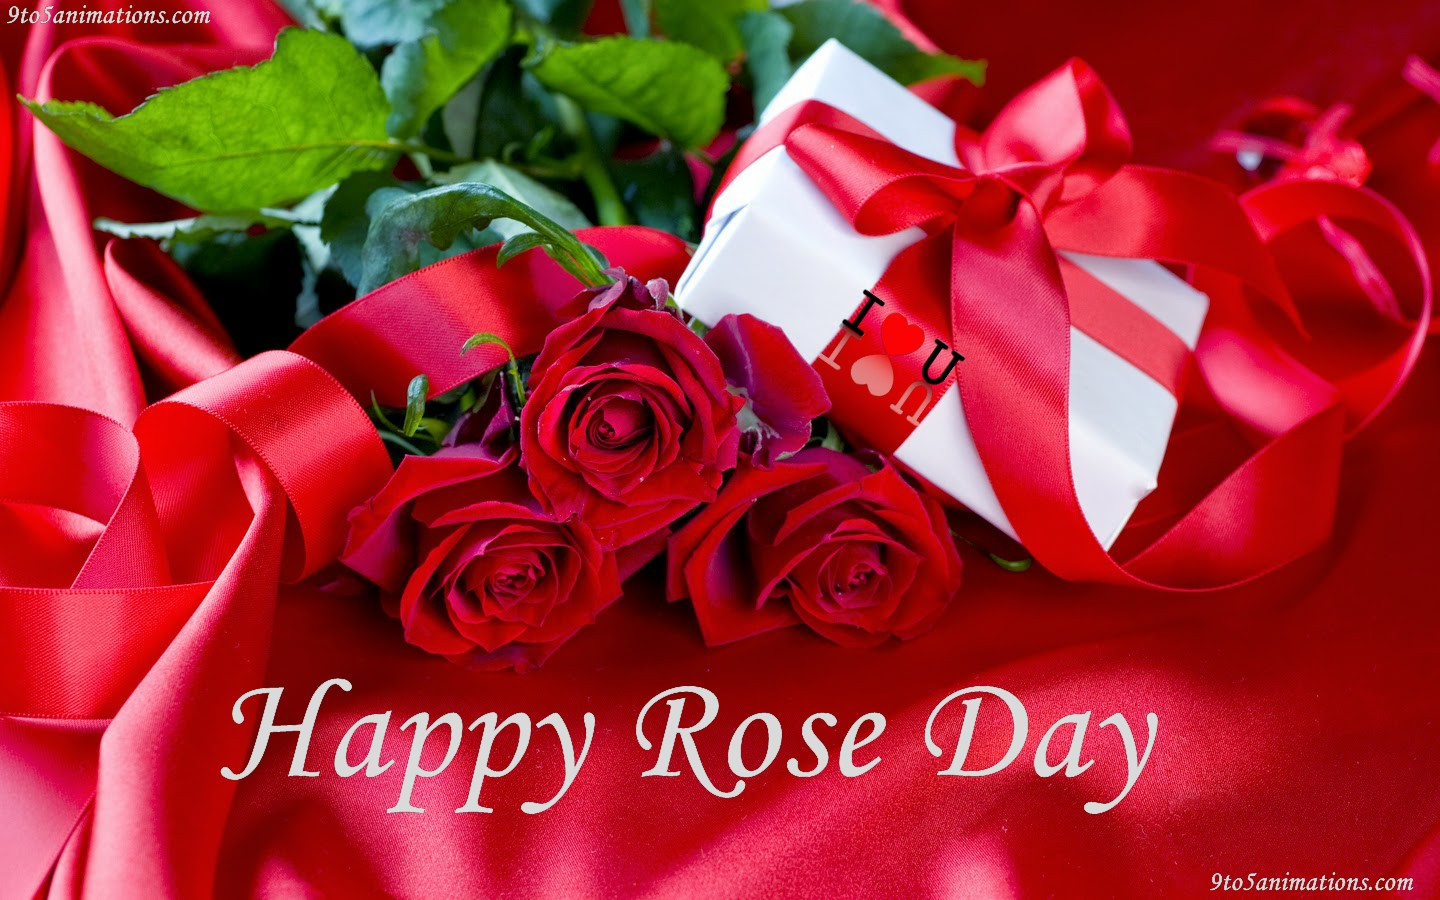 Happy Rose Day Wishes Wallpaper - Happy Birthday To You Gifts With Flower , HD Wallpaper & Backgrounds